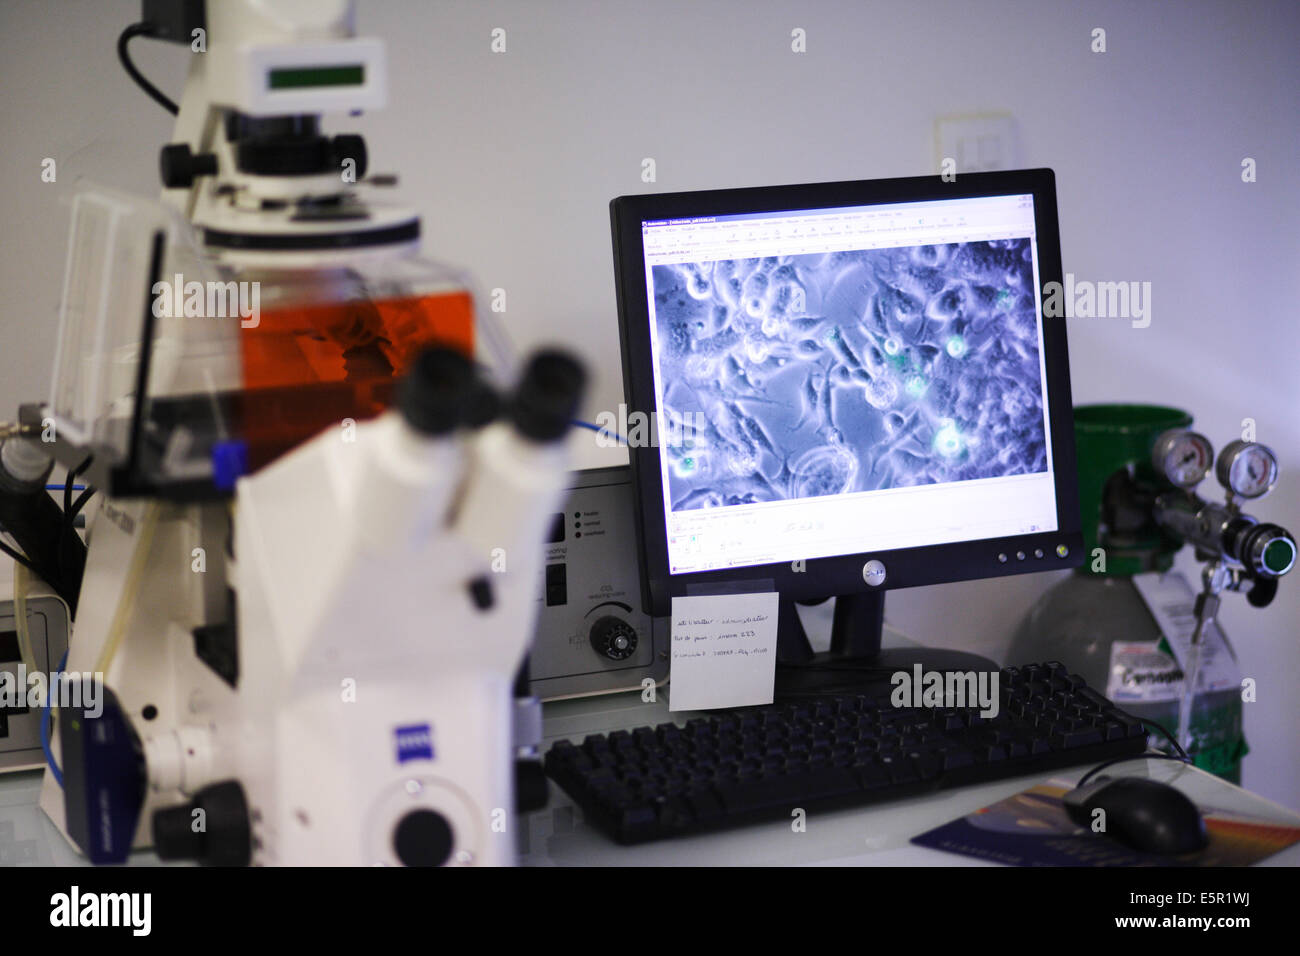 structure and activity of normal and pathological biomolecules  Research laboratory, specialized in the study of - Stock Image